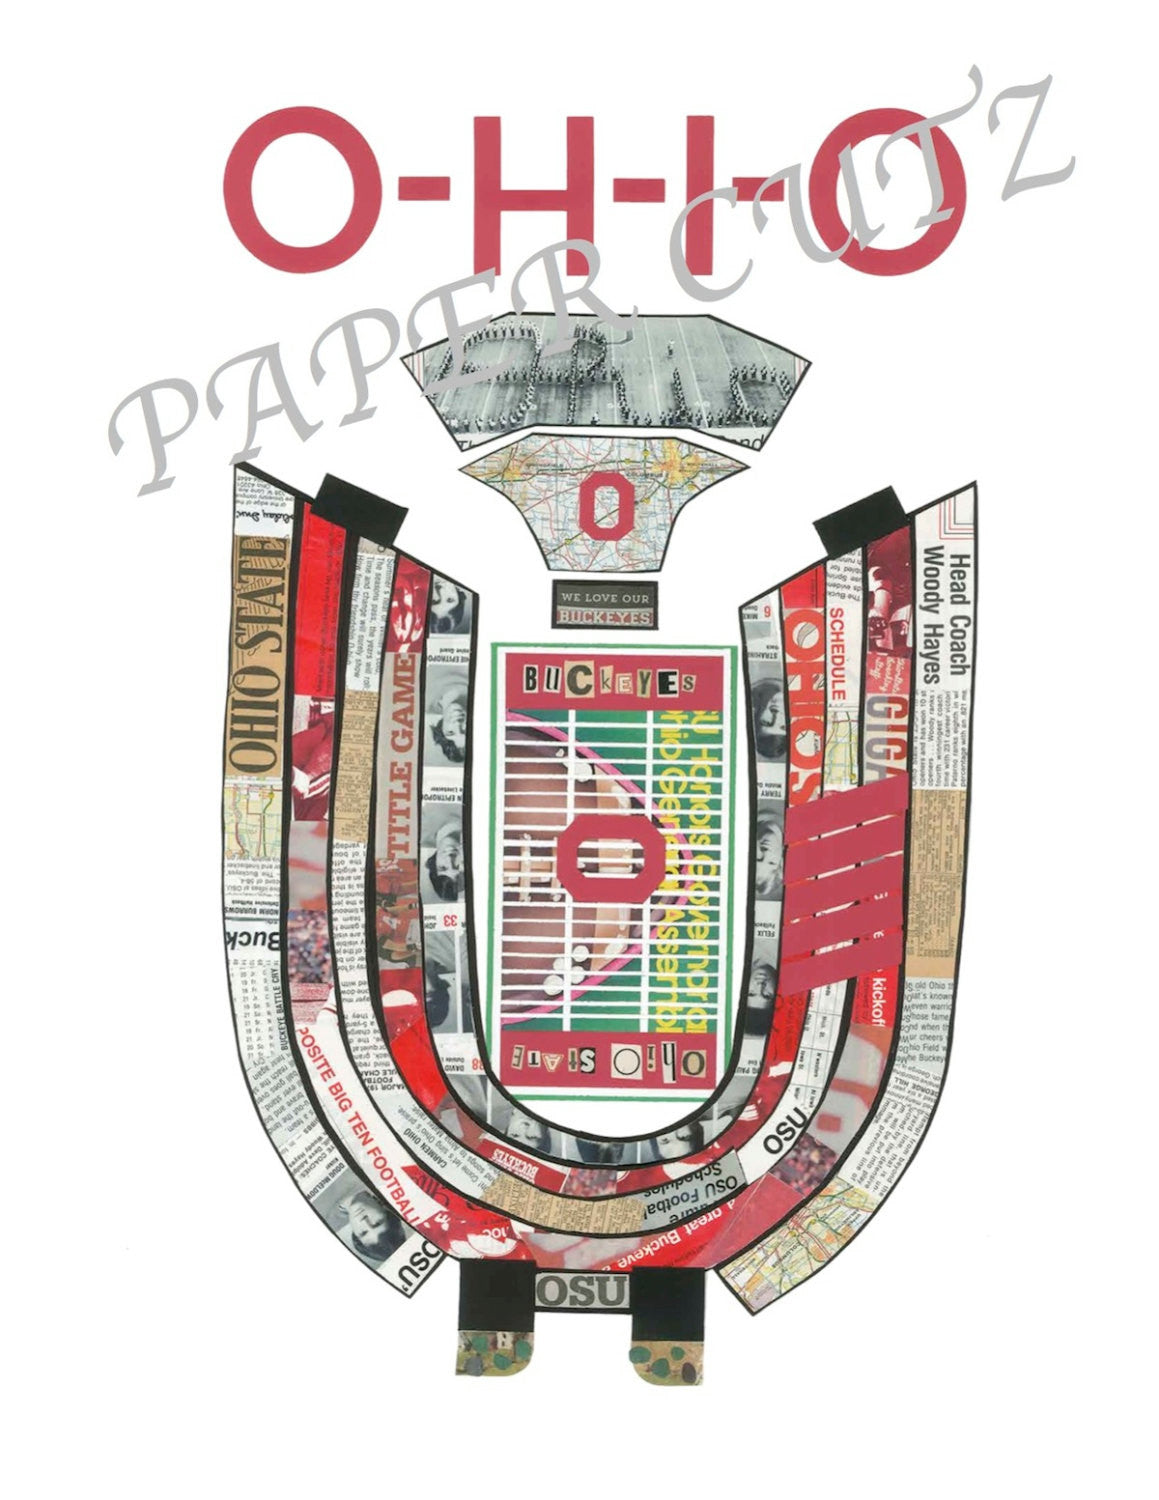 Ohio State Football Vintage Notecard Sets - Celebrate Local, Shop The Best of Ohio - 1